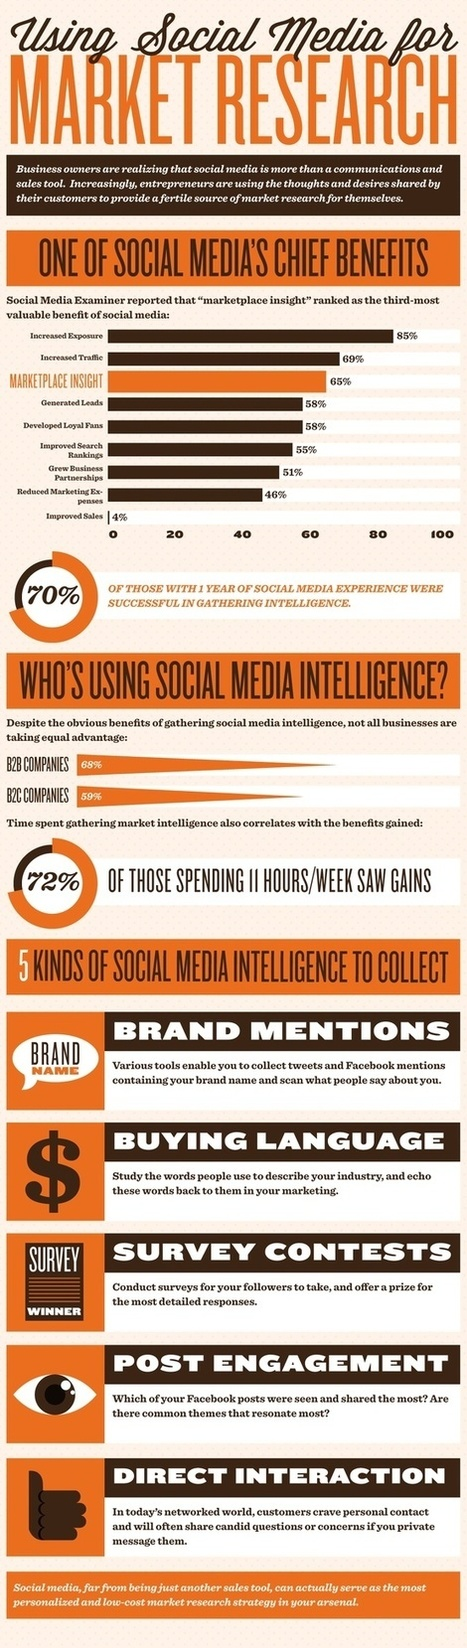 Only 59% of B2C Companies use Social Media for Market Research | Consumer Engagement Marketing | Scoop.it